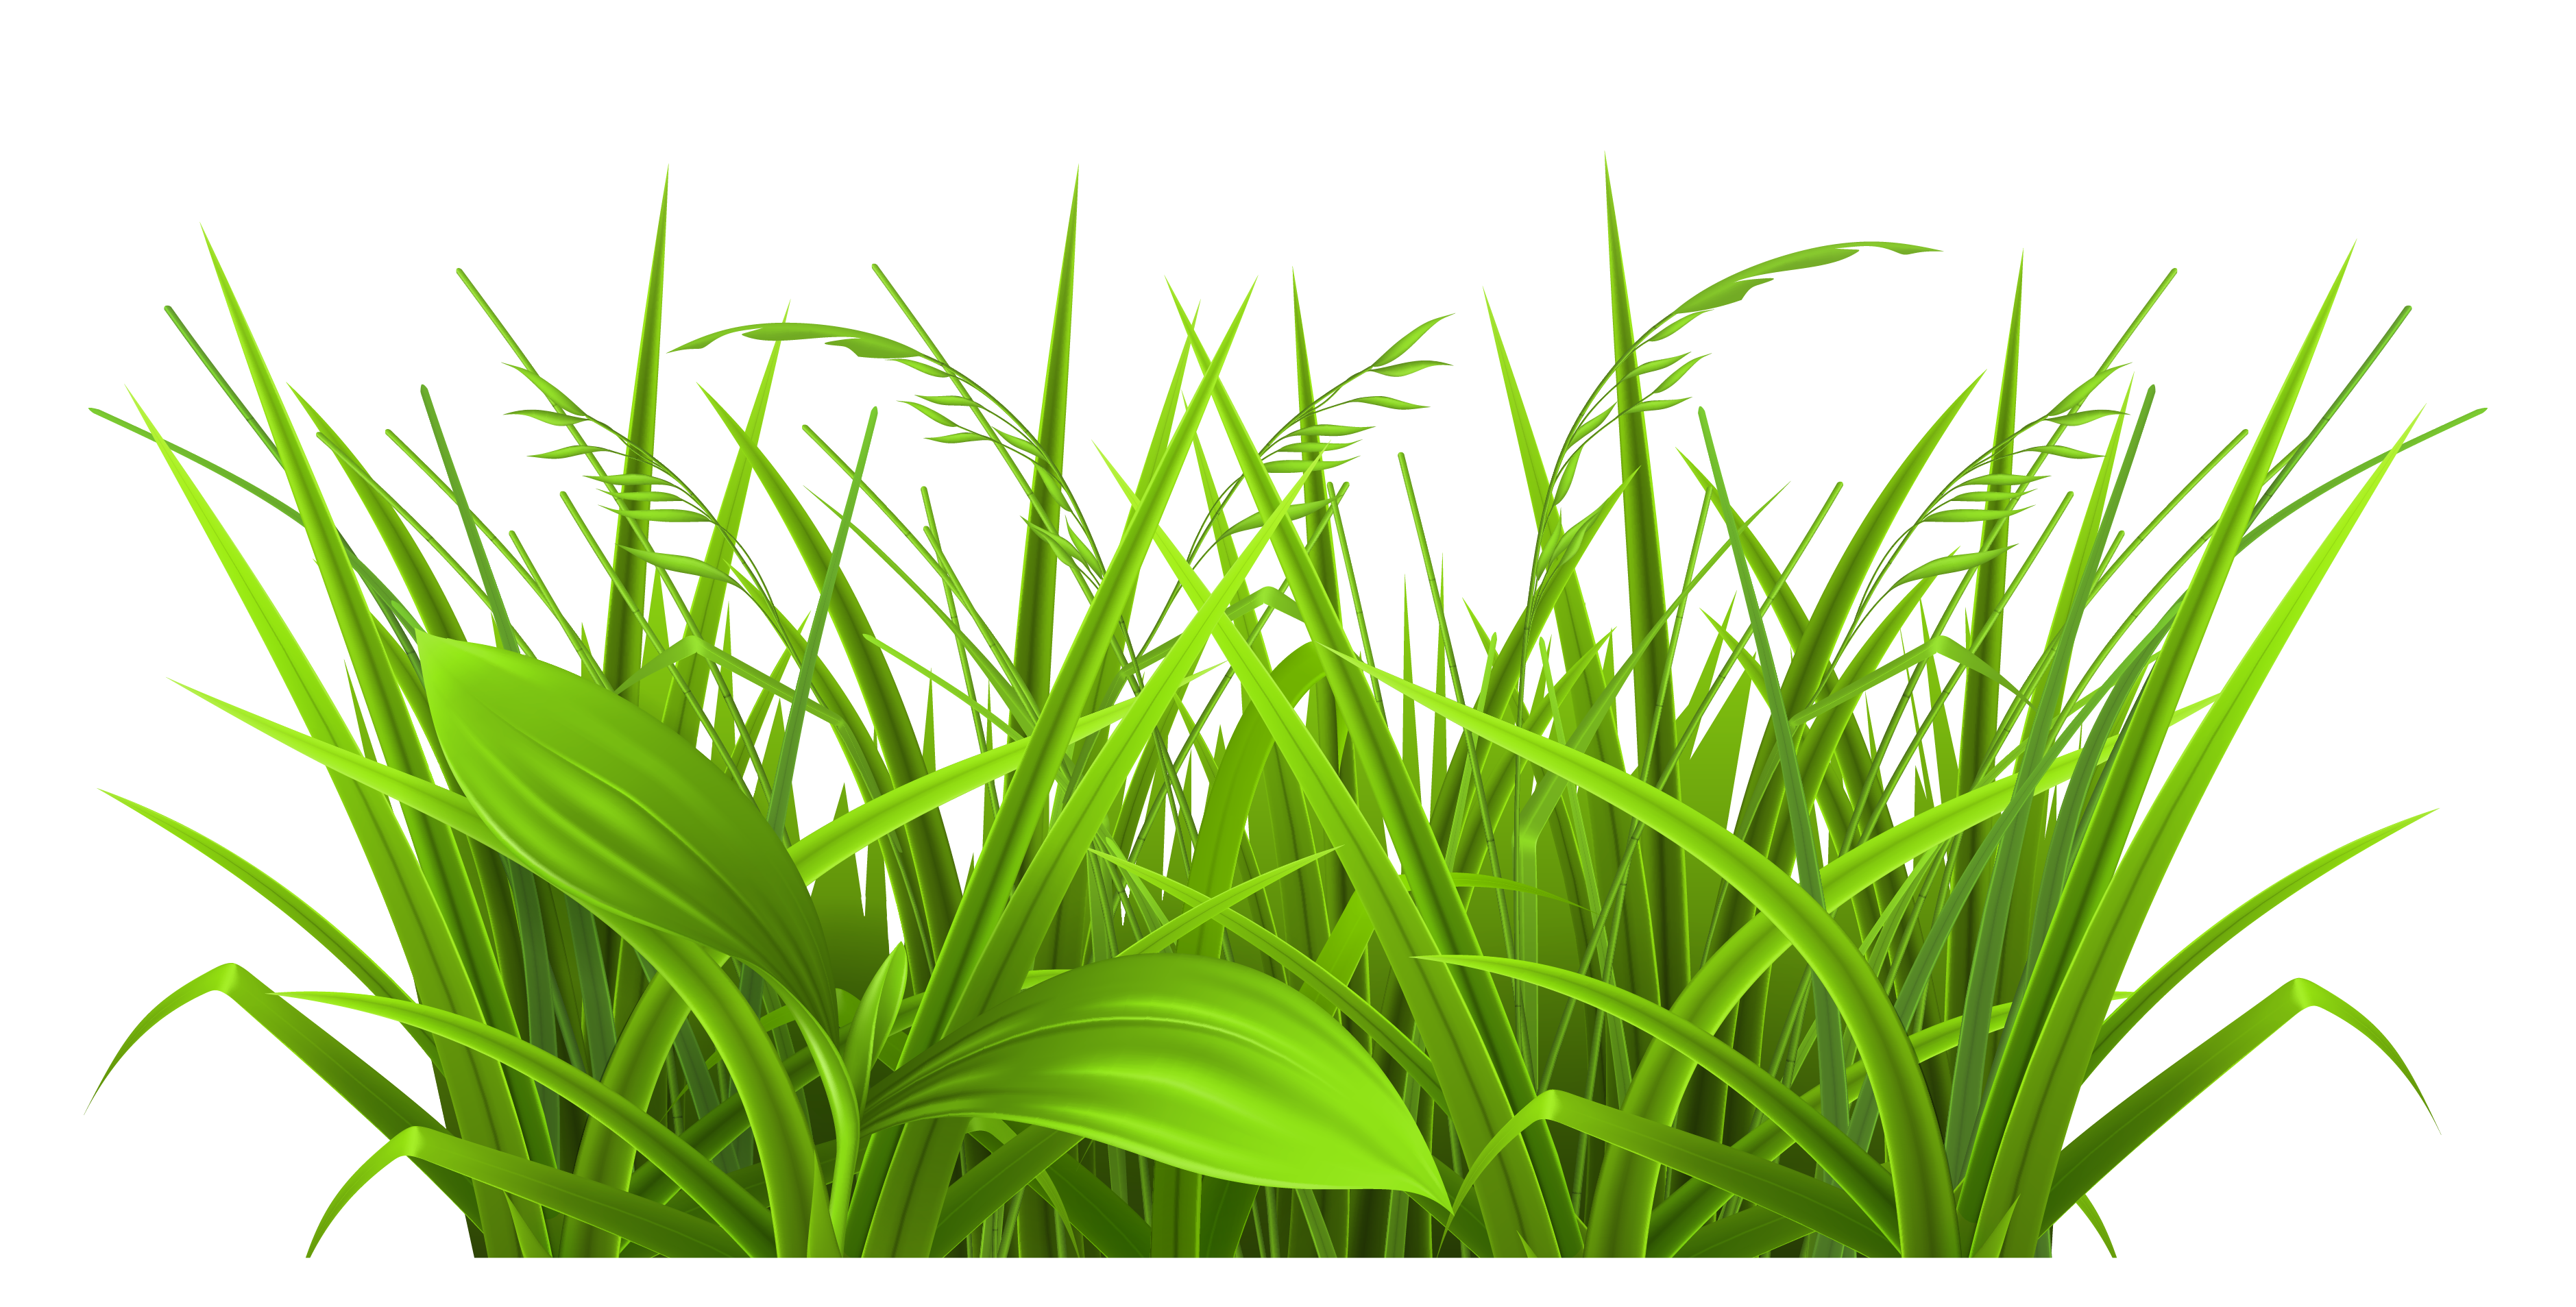 Grass clipart #15, Download drawings